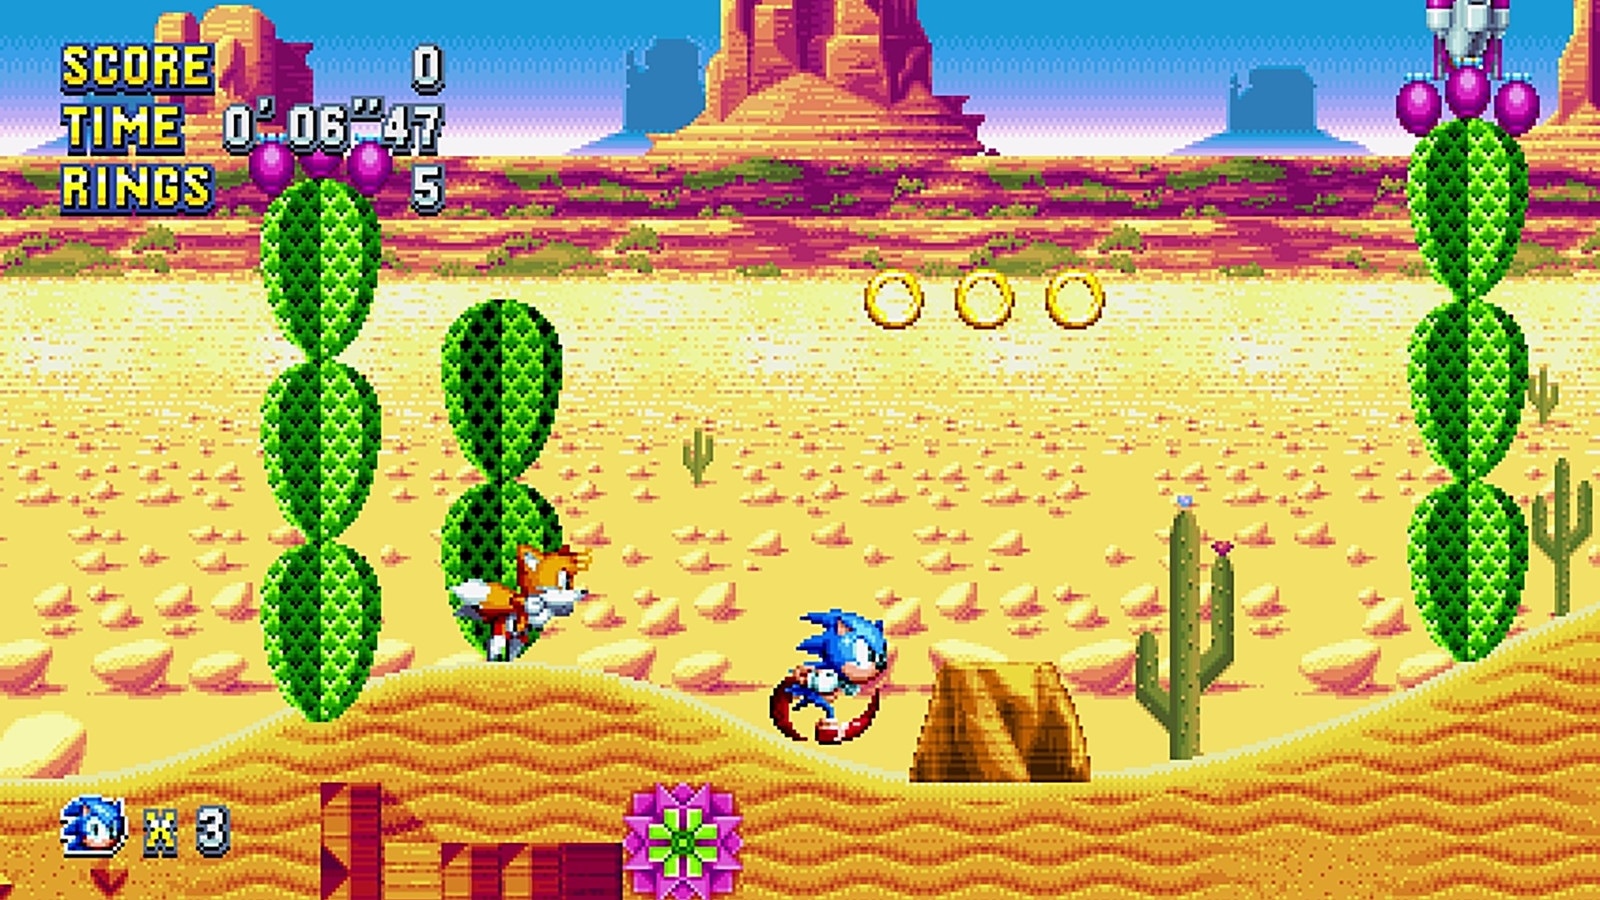 The future of Sonic the Hedgehog